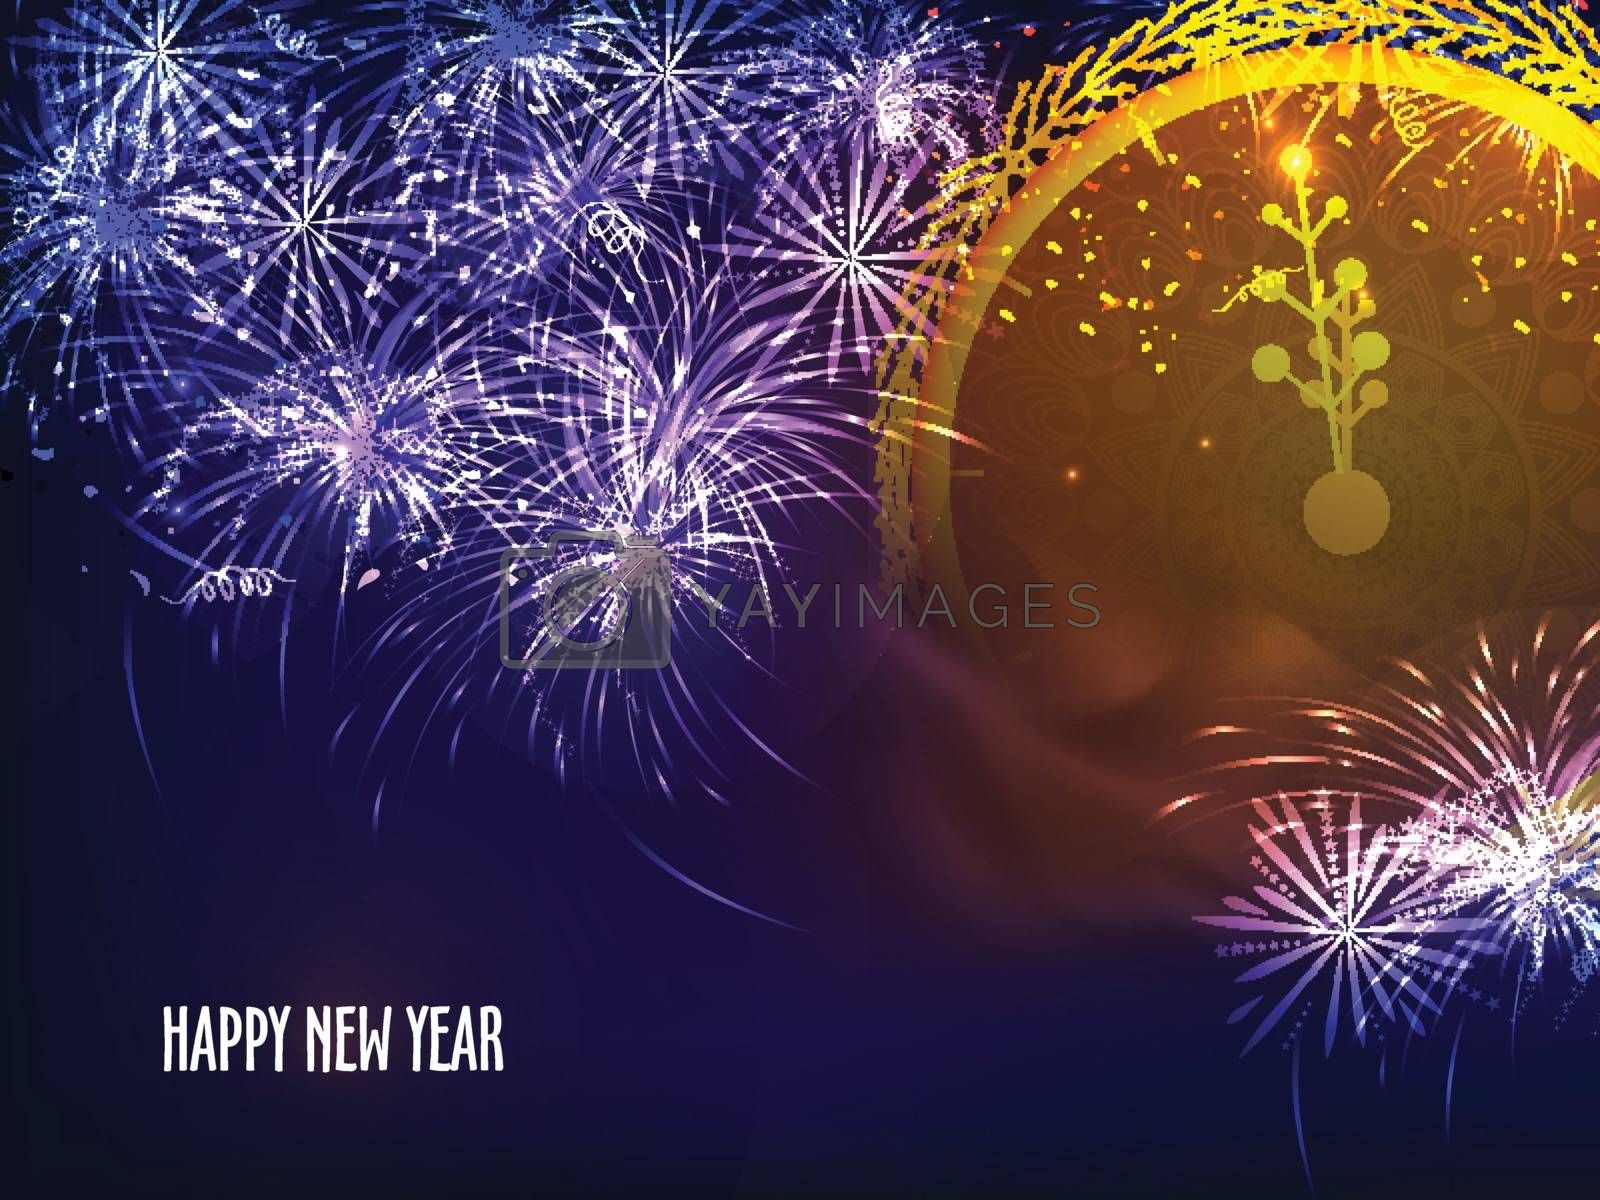 Sparkling festive background with firework explosion. Creative clock showing midnight time for Happy New Year celebration.